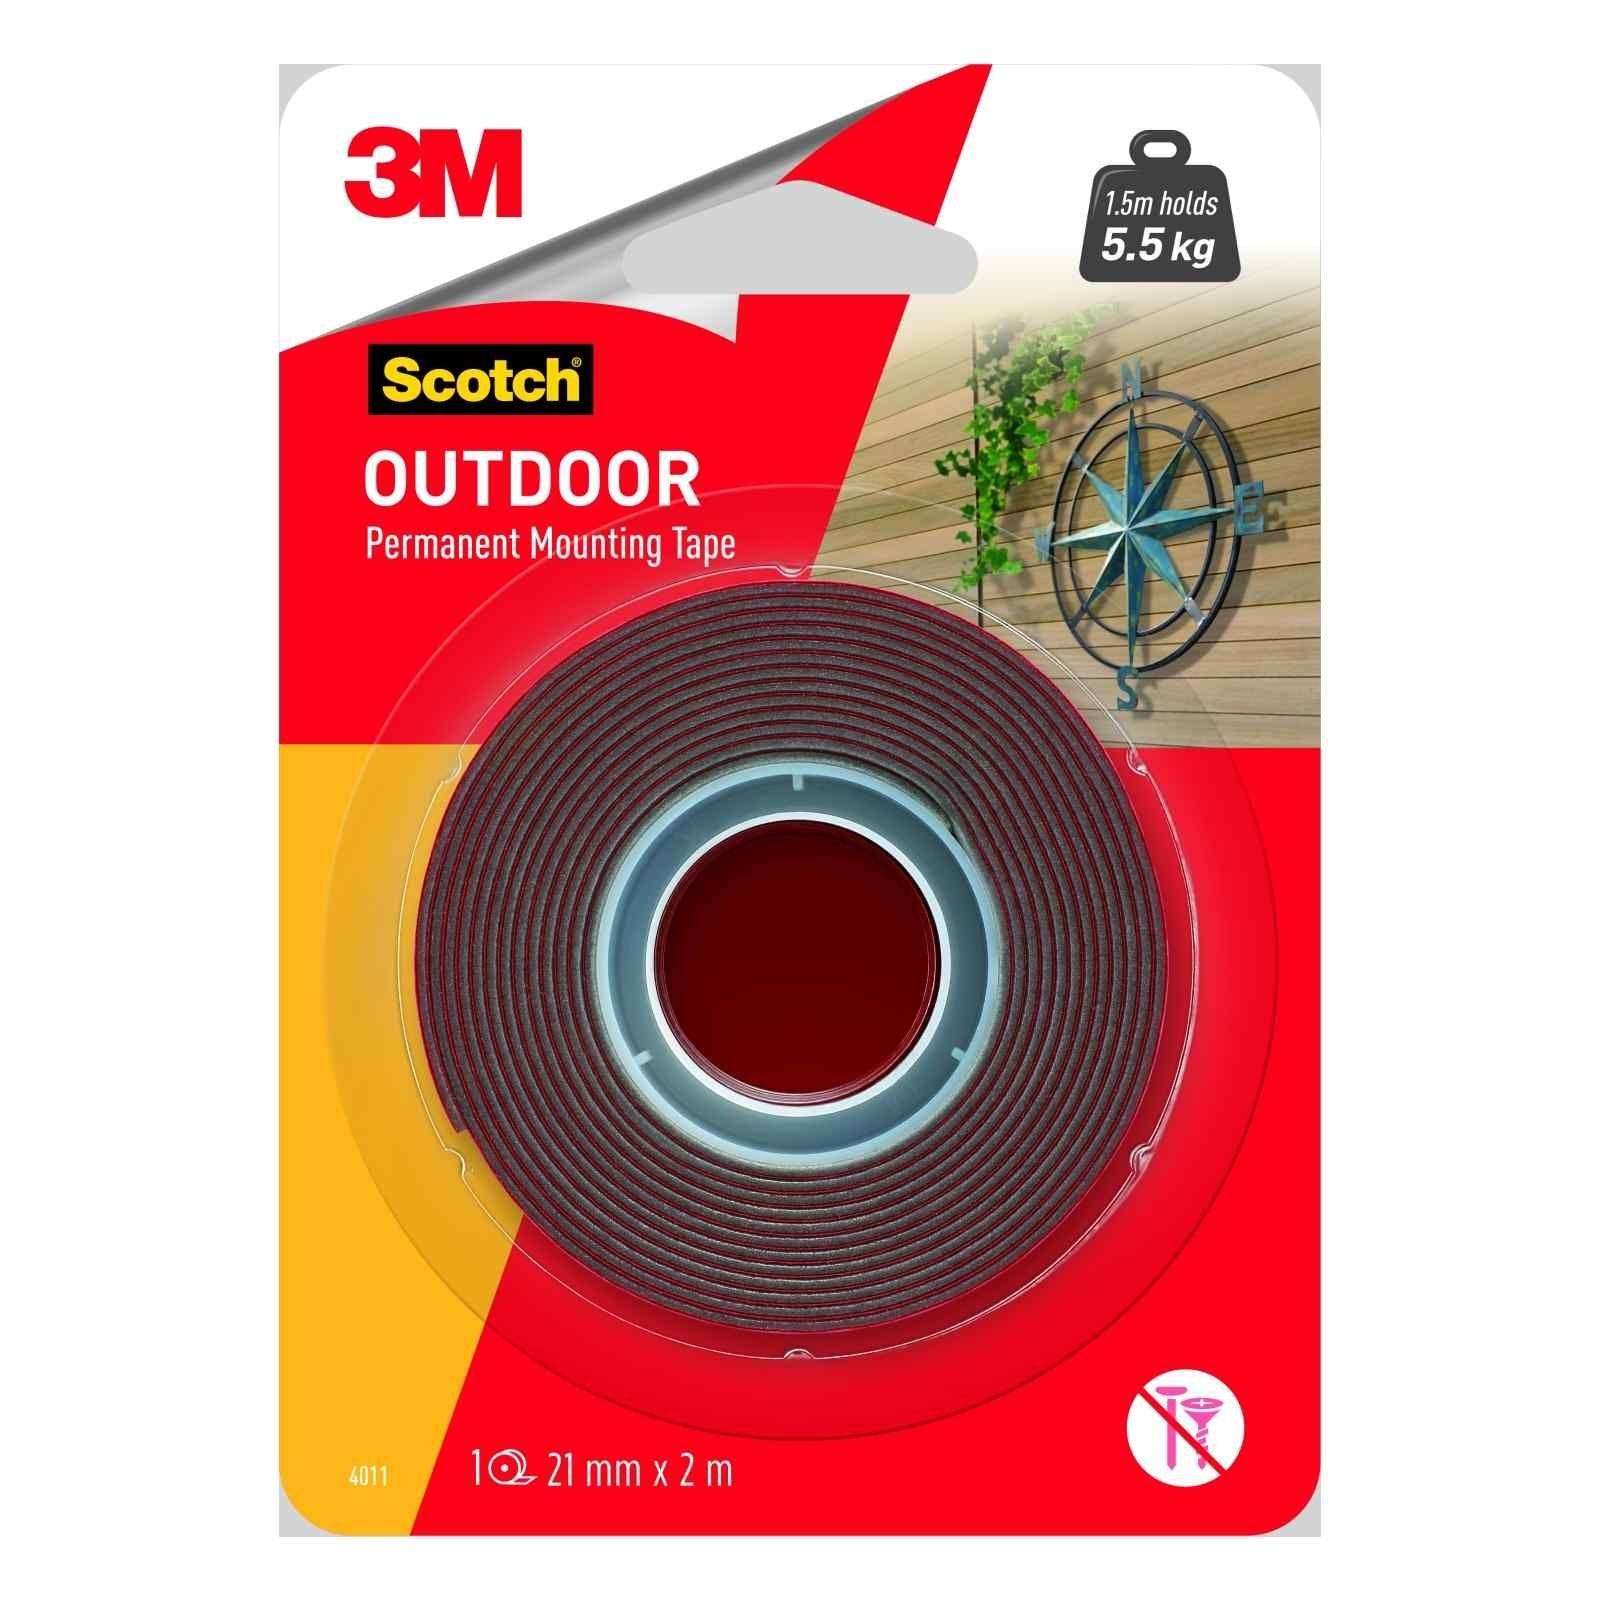 3M Scotch Permanent Outdoor Mounting Tape 21mm x 2m 4011-2M